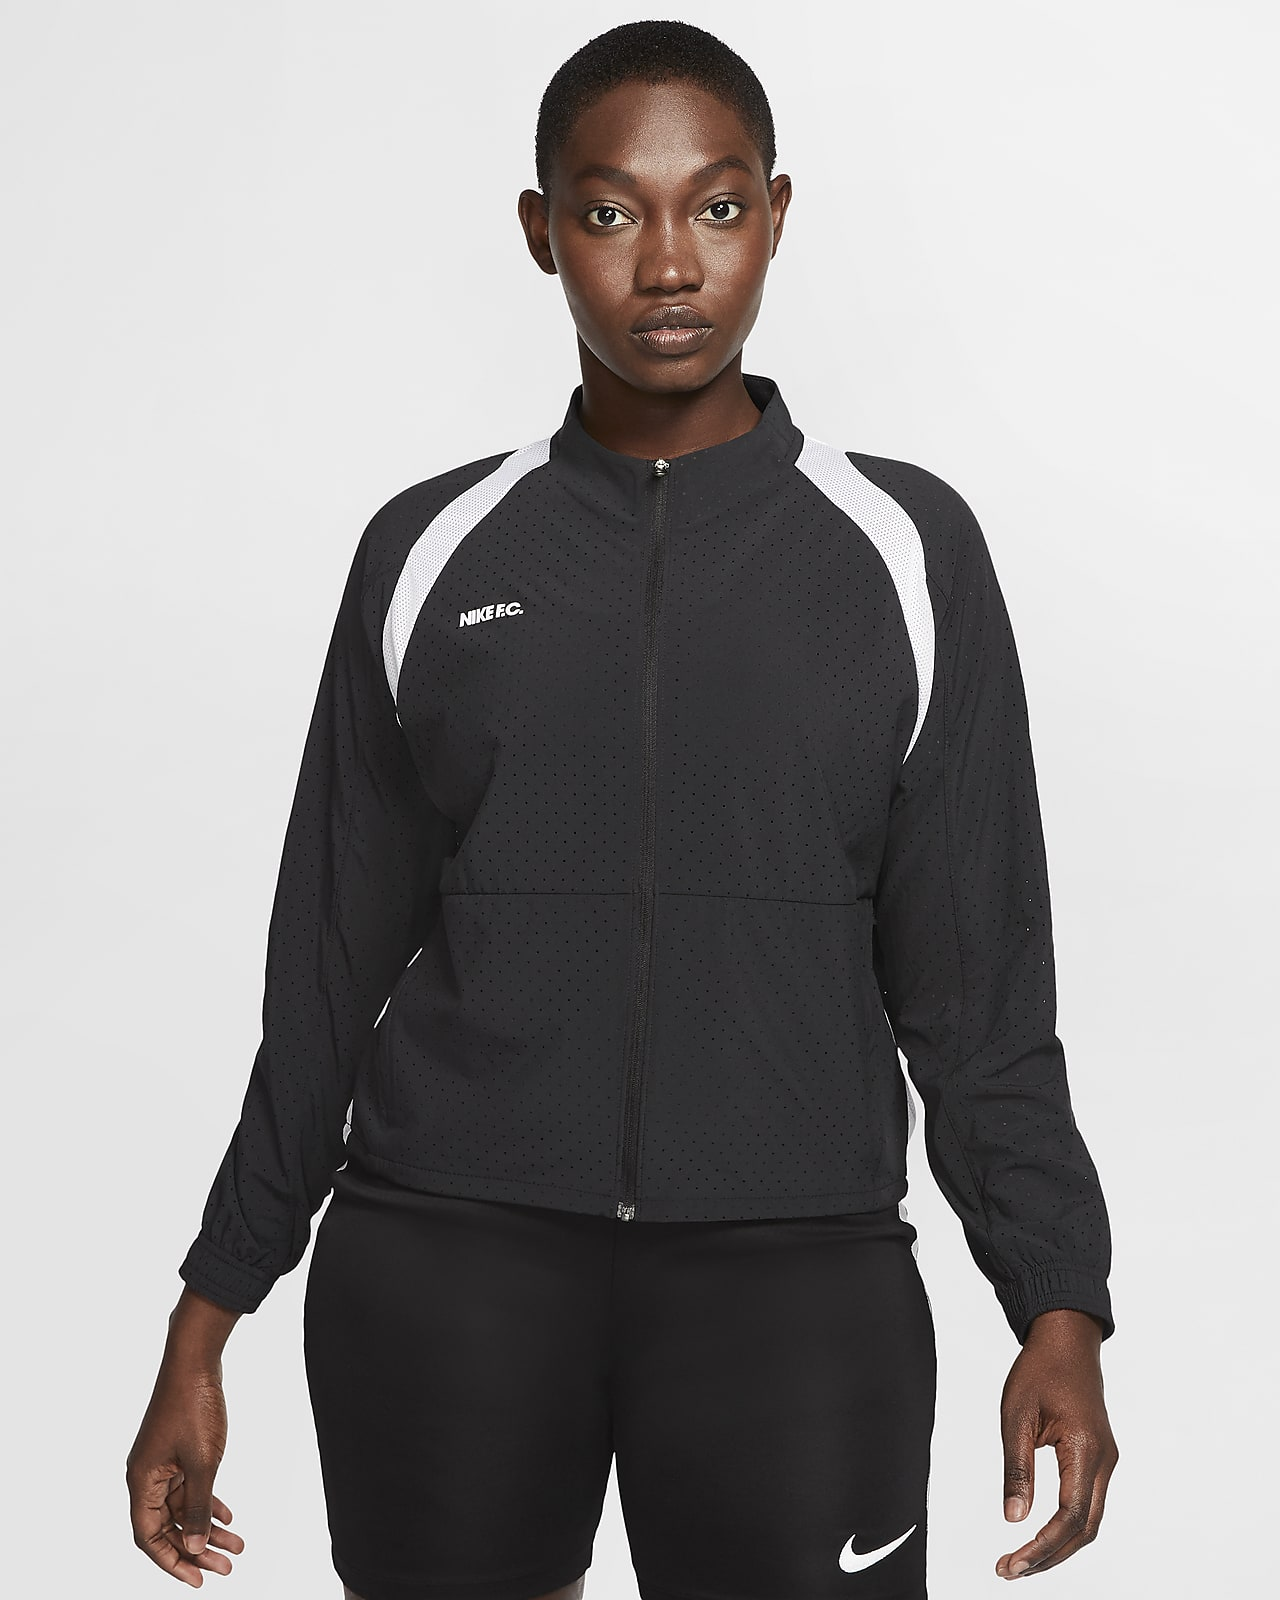 Nike F.C. Women's Full-Zip Football Jacket